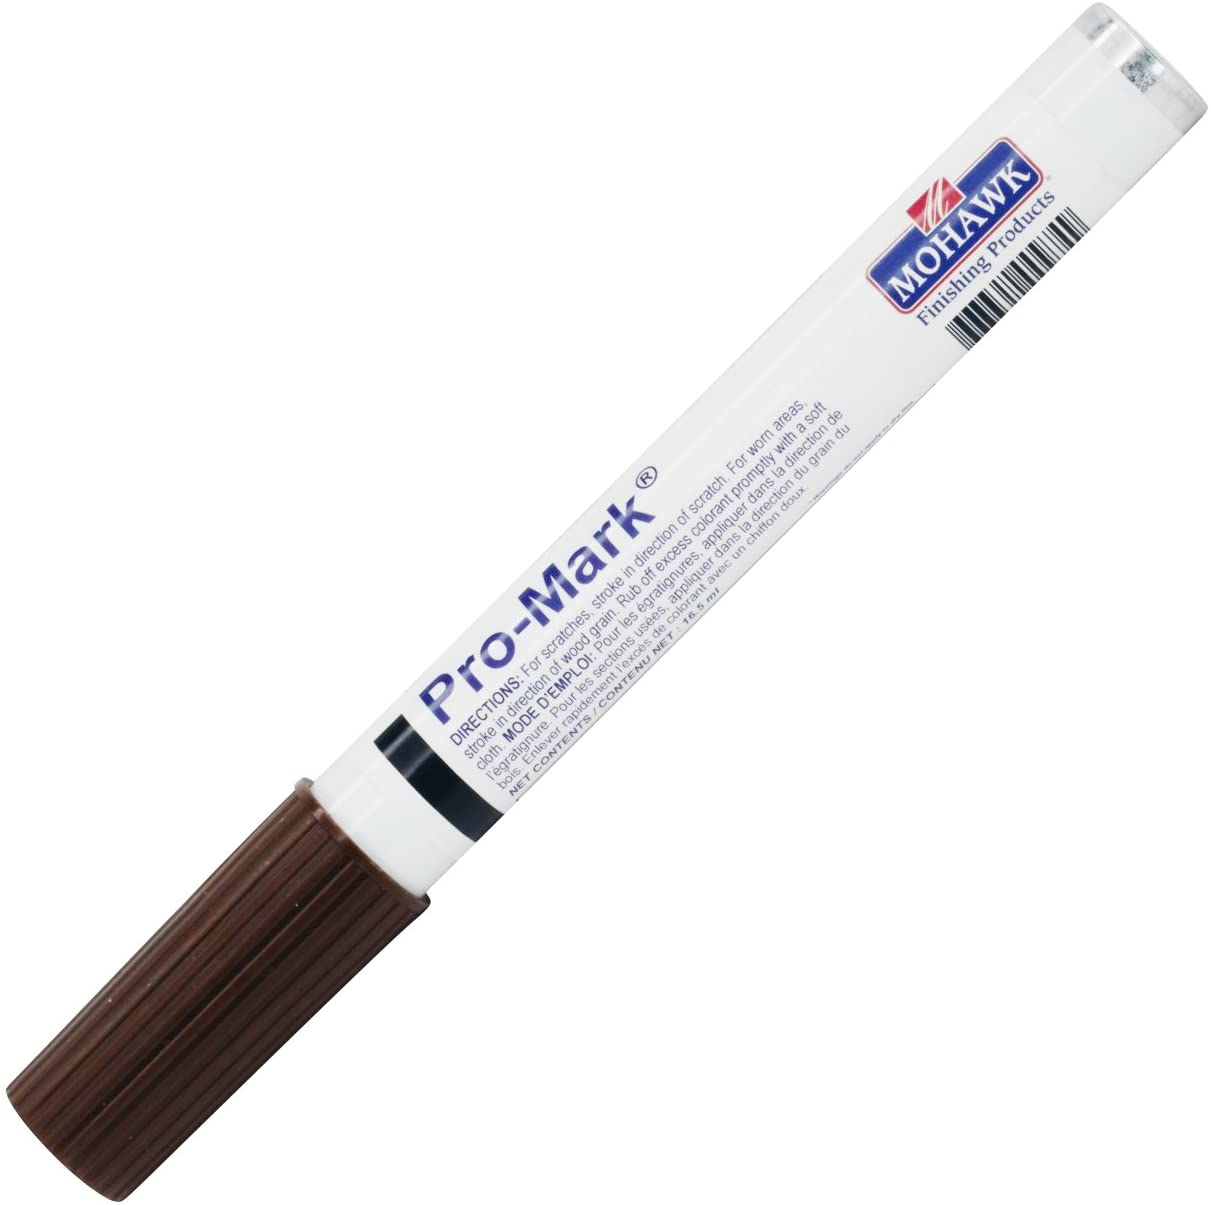 Mohawk Pro Mark Wood Furniture Cabinet Floor Touch Up Marker Espresso Kmc M267-0034 (1 Pack)